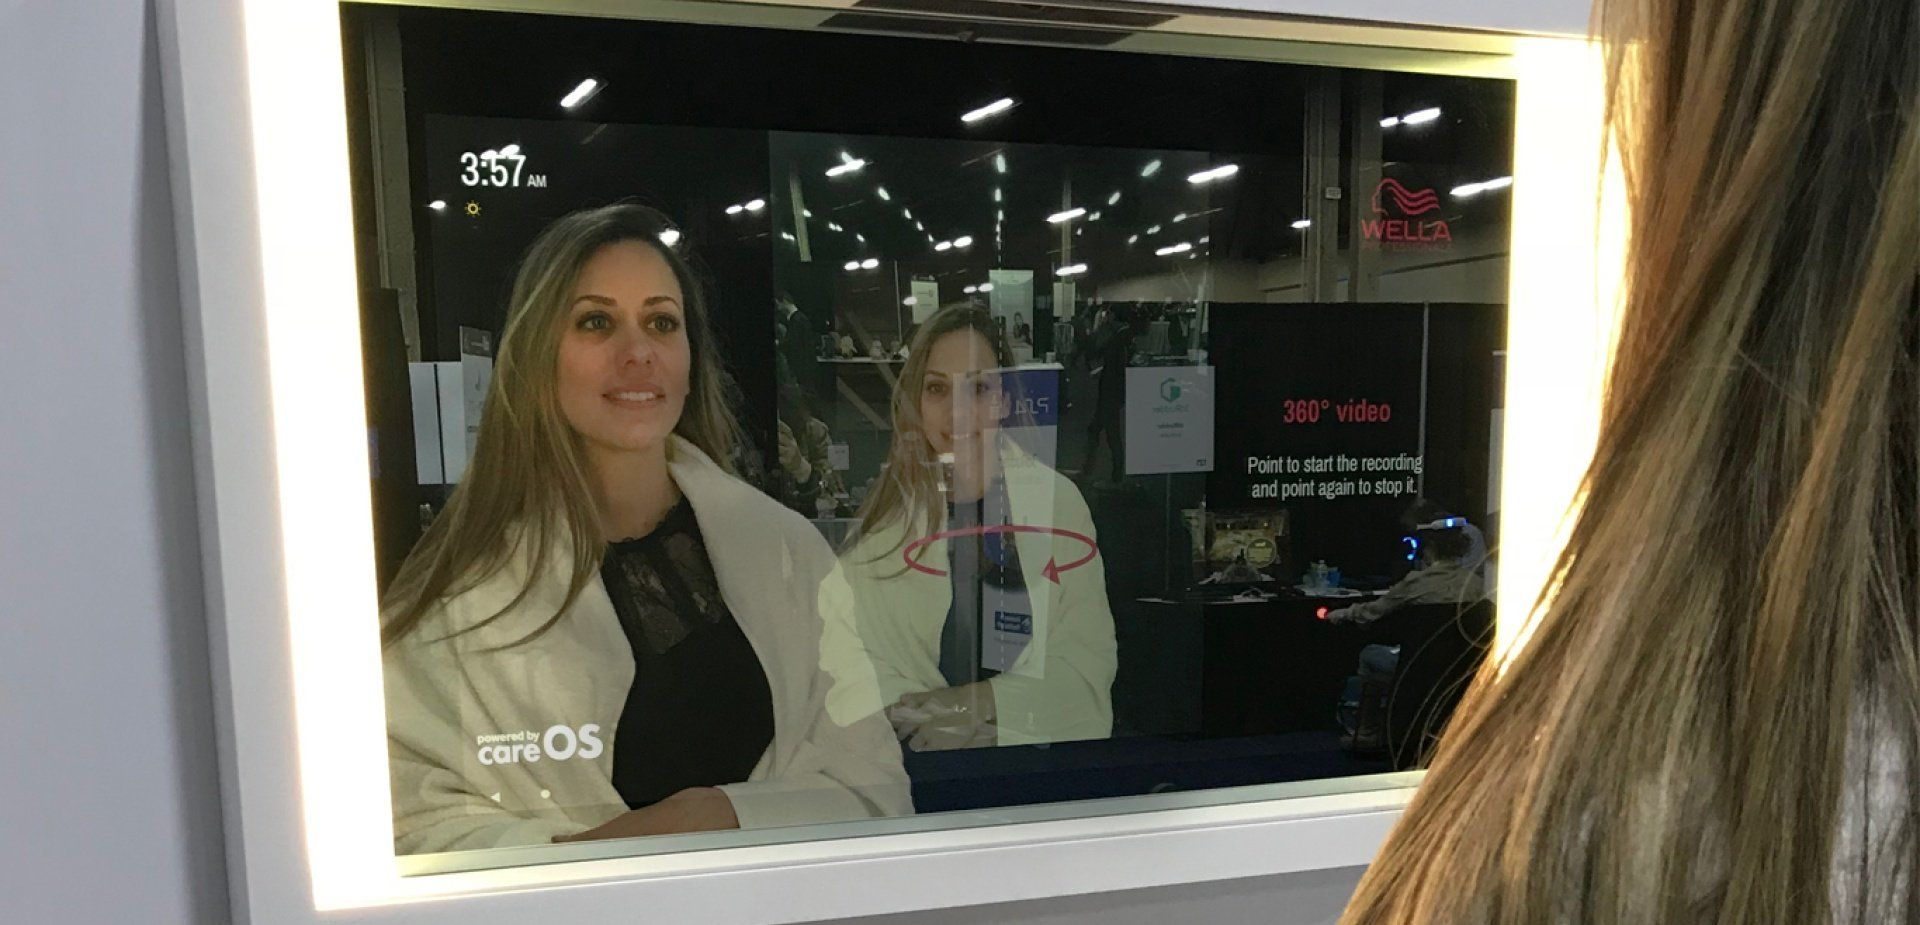 Coty unveils Wella Professionals AR enabled smart mirror for hair salon at CES 2019